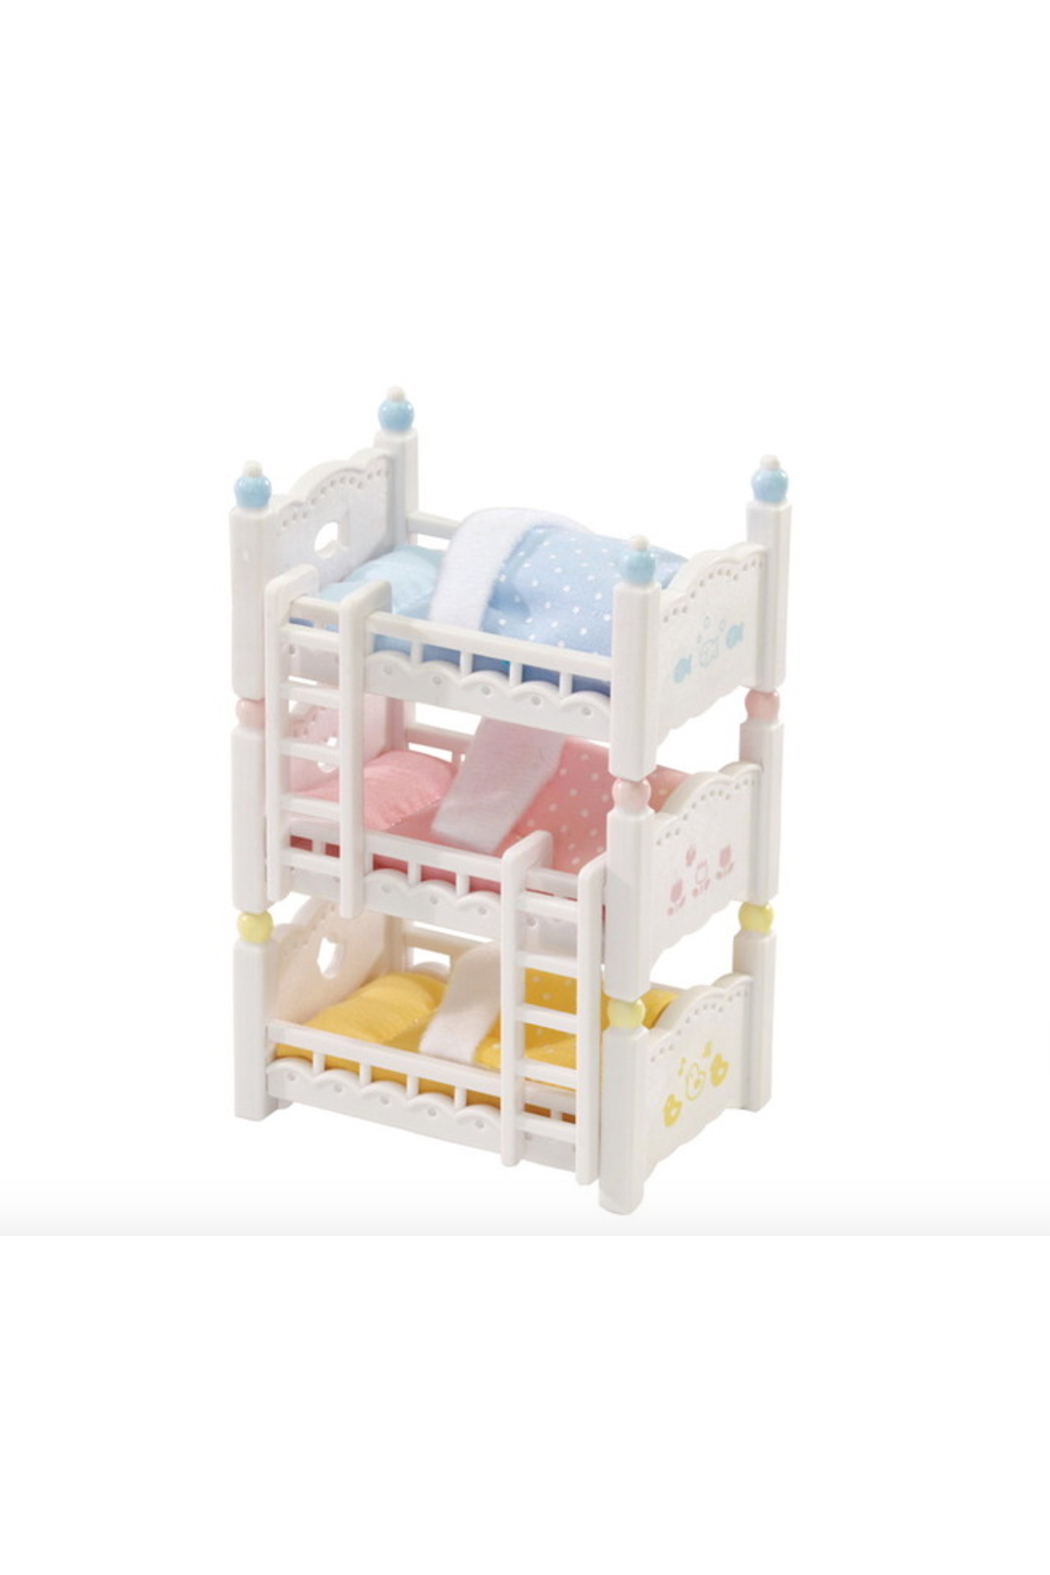 Calico Critters Triple Baby Bunk Beds - Main Image